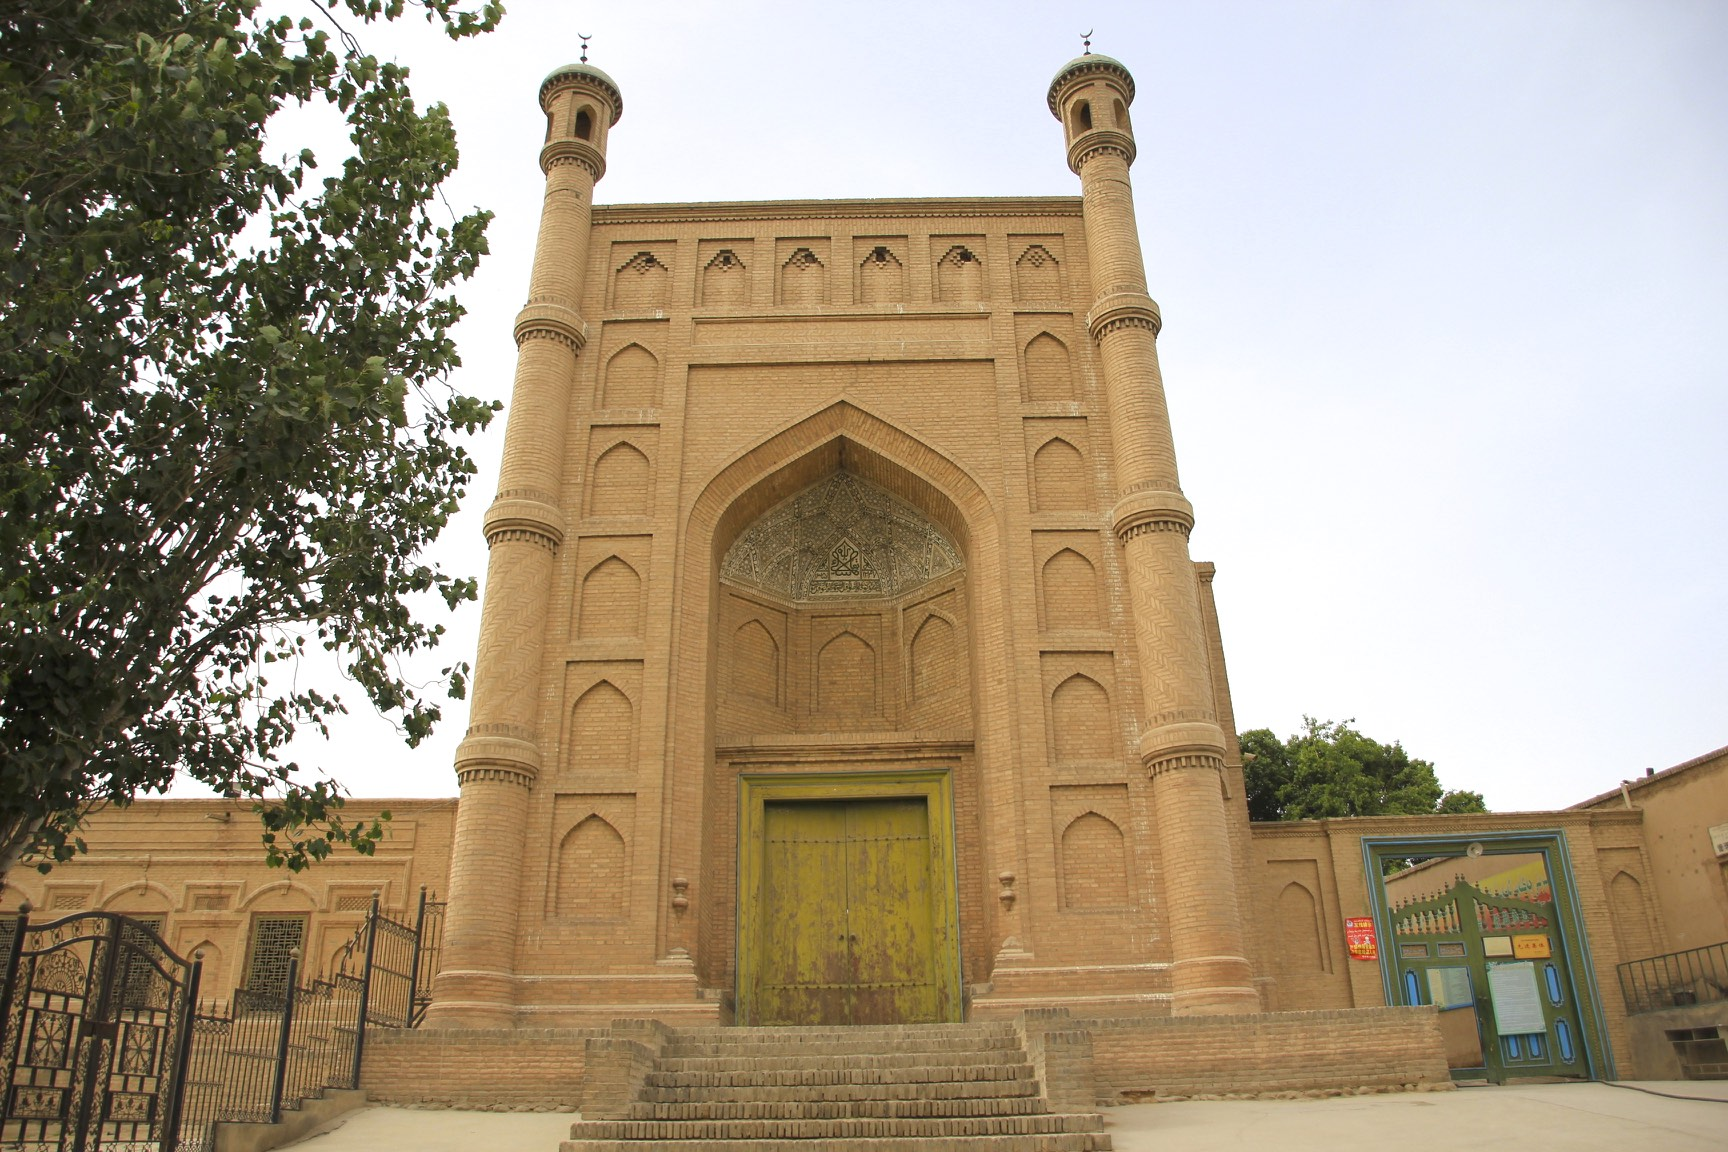 Kucha Grand mosque is the third largest mosque in the region, was rebuilt in 1932 on the site of original 16th century mosque.